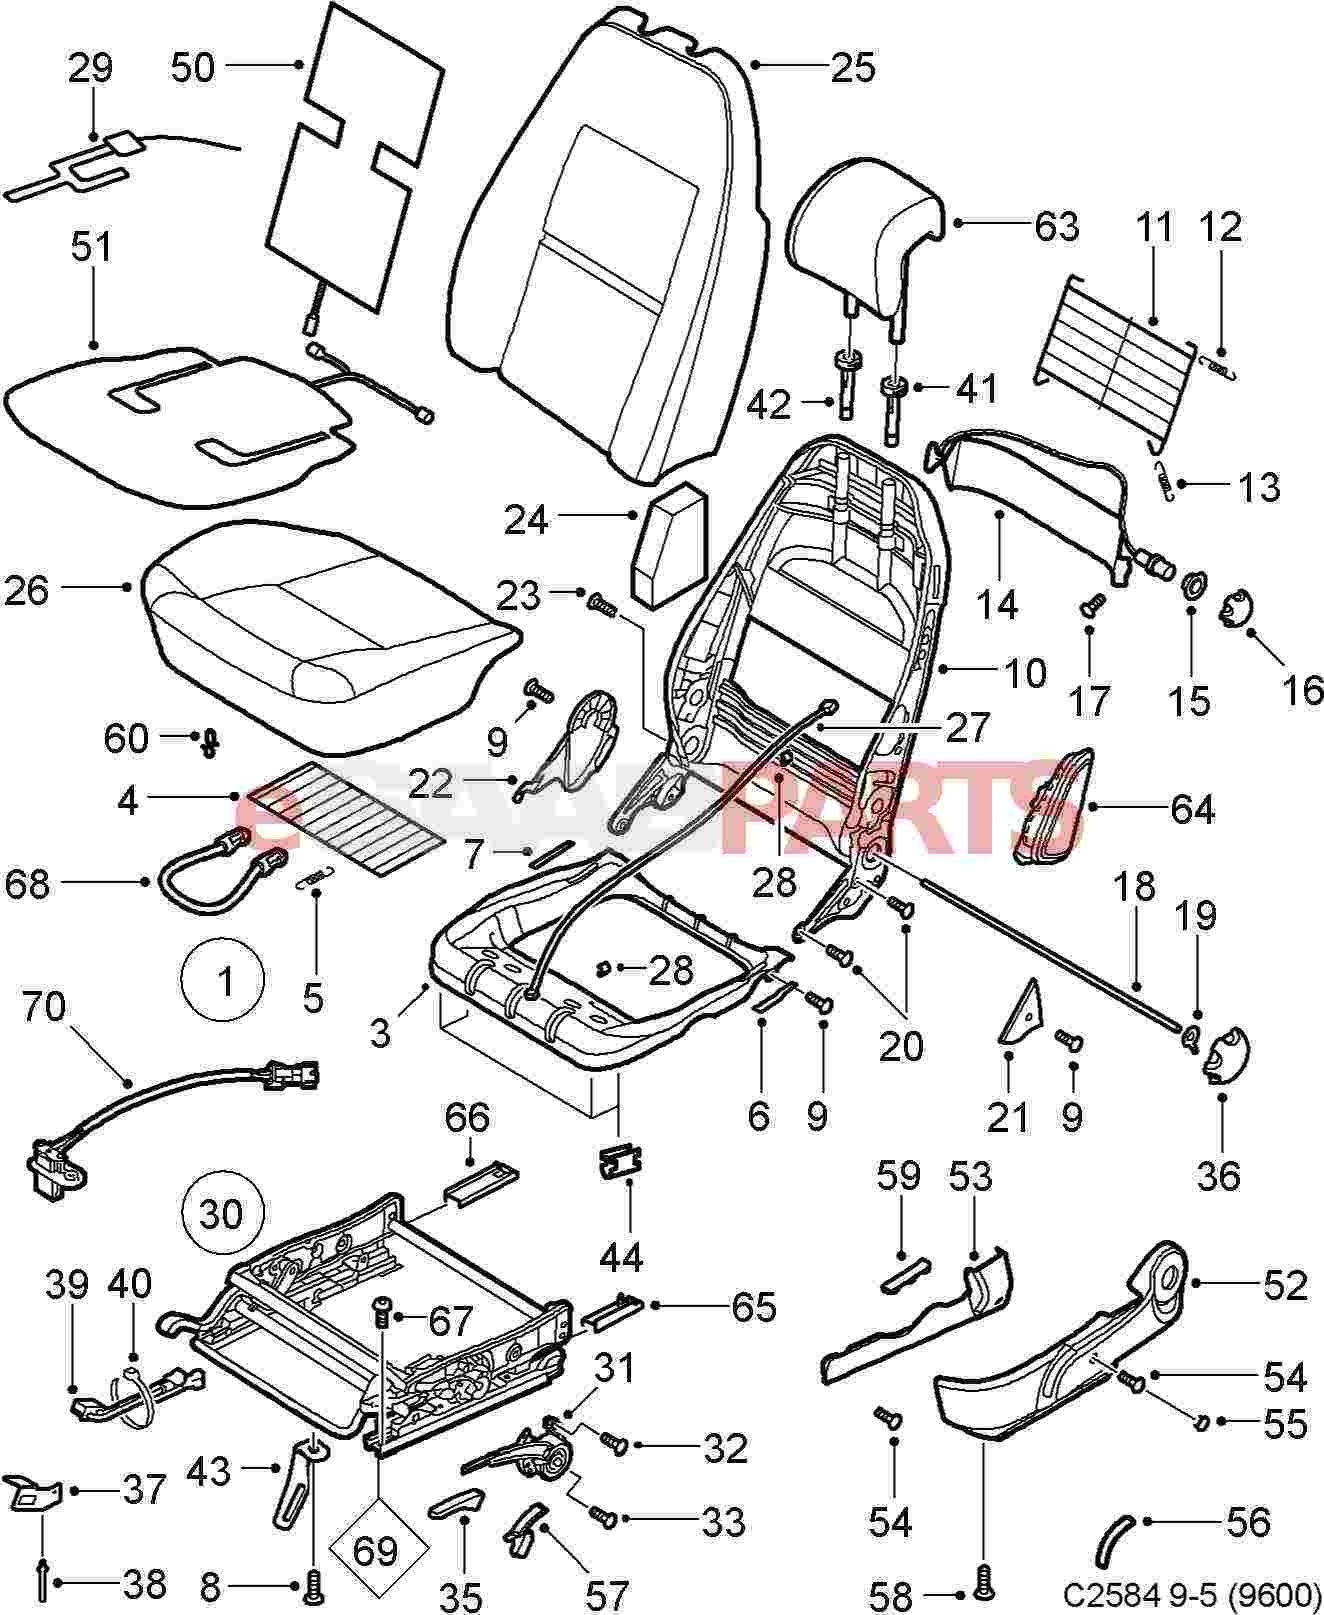 89 Quick Diagram Photo Inspirations together with Kawasaki Ninja 500 Wiring Diagram together with Avenger Fuse Box Diagram 1992 Saab 900 Turbo Ignition Wiring Diagram further 1984 Saab 900 Turbo Wiring Harness likewise Renault Trafic 2 5 1993 Specs And Images. on 89 saab 900 wiring diagram